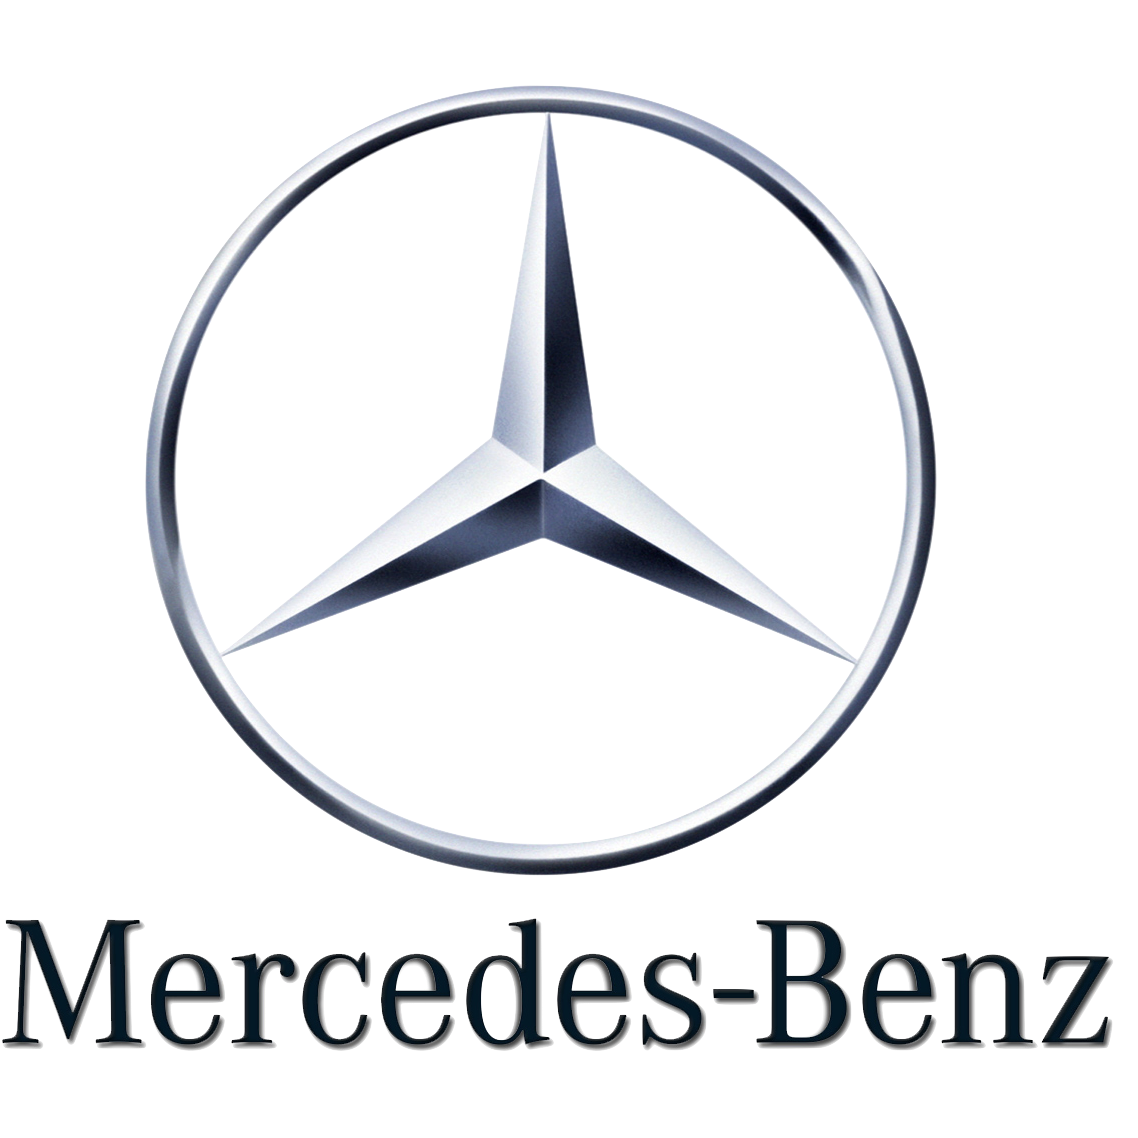 Mercedes logo google search mercedes pinterest for Mercedes benz inventory search